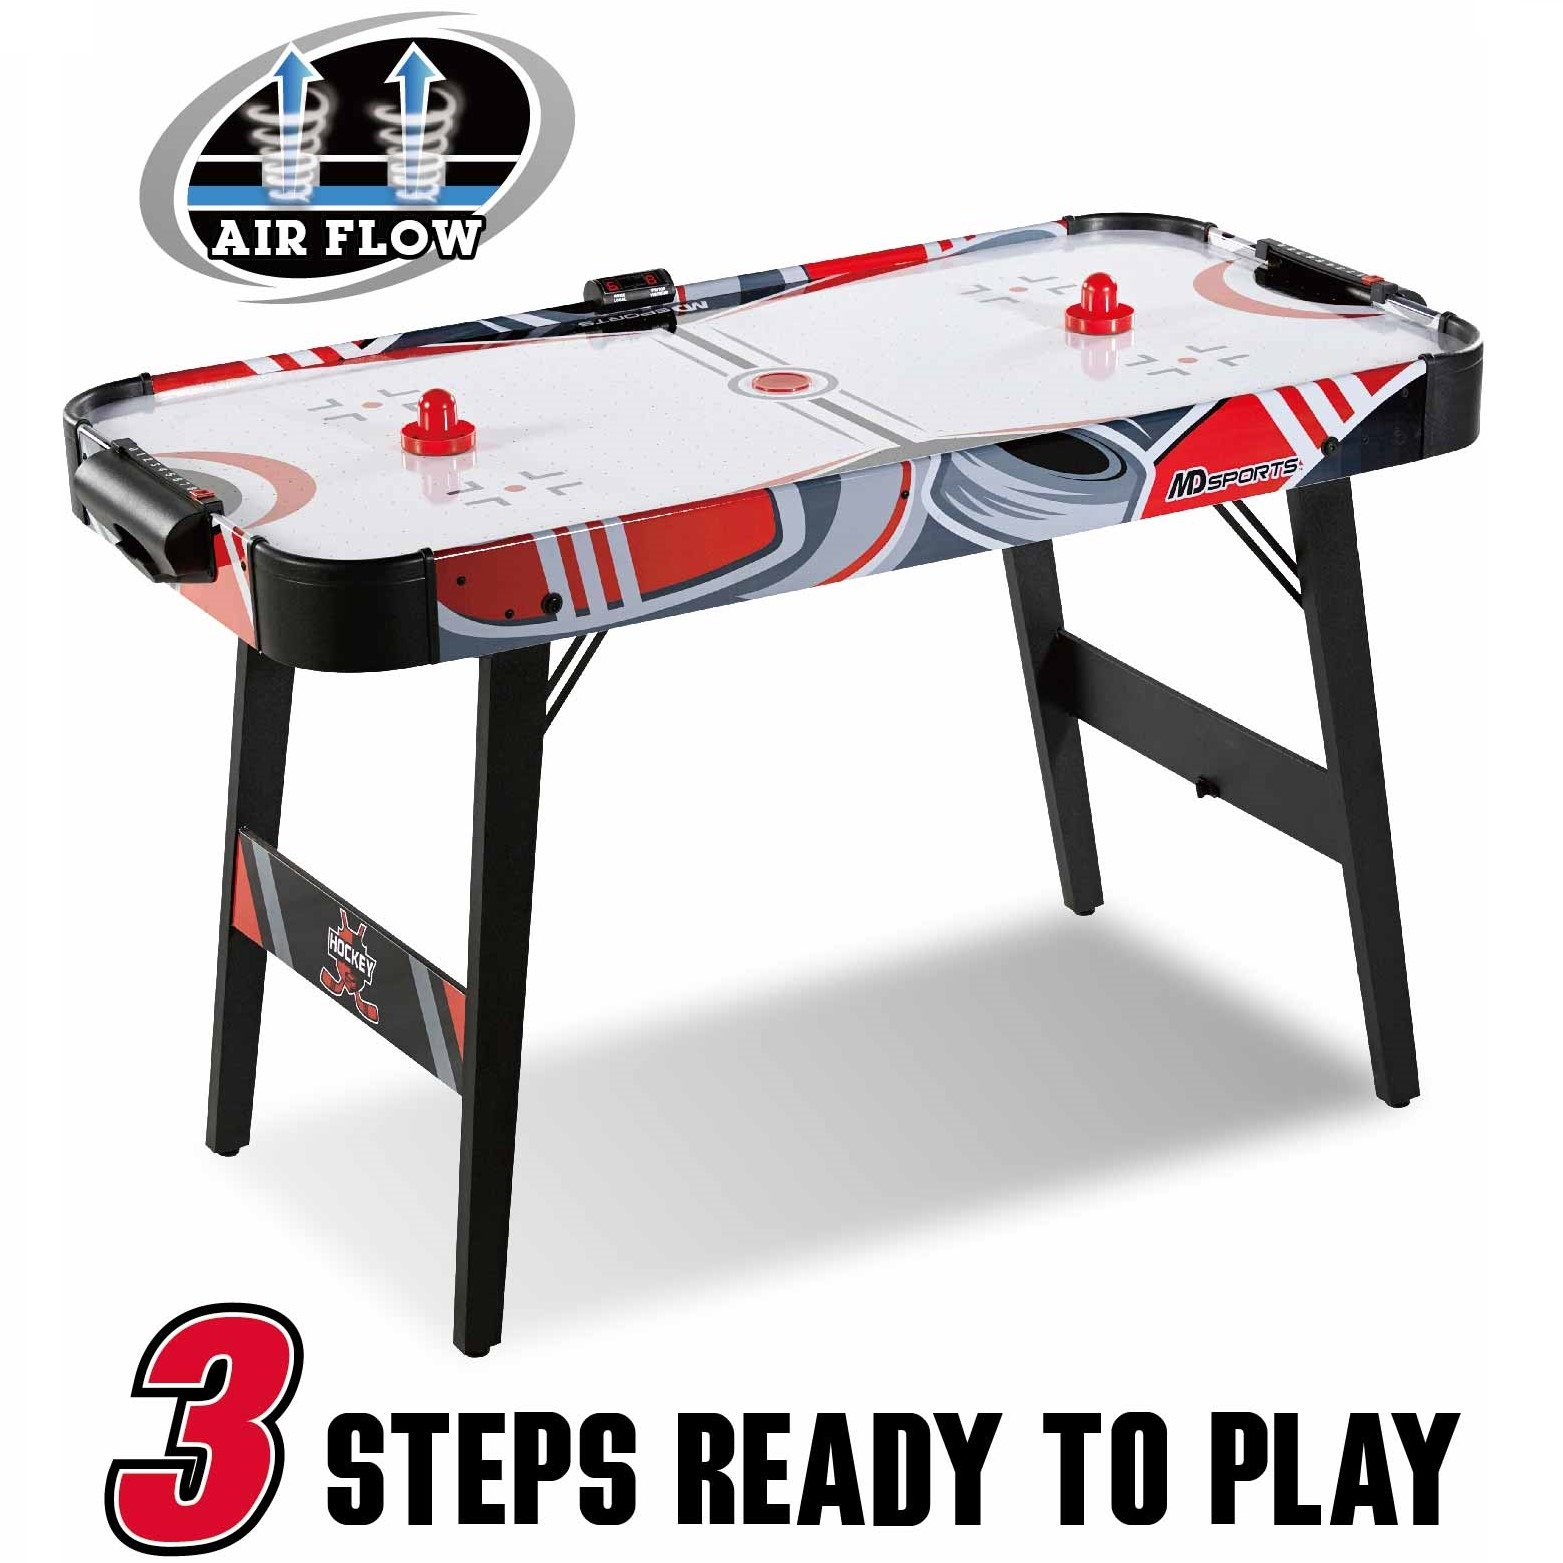 MD Sports Easy Assembly 48 Inch Air Powered Hockey Table, Space-Saving Design, Foldable Legs by MEDAL SPORTS TAIWAN CORPORATION